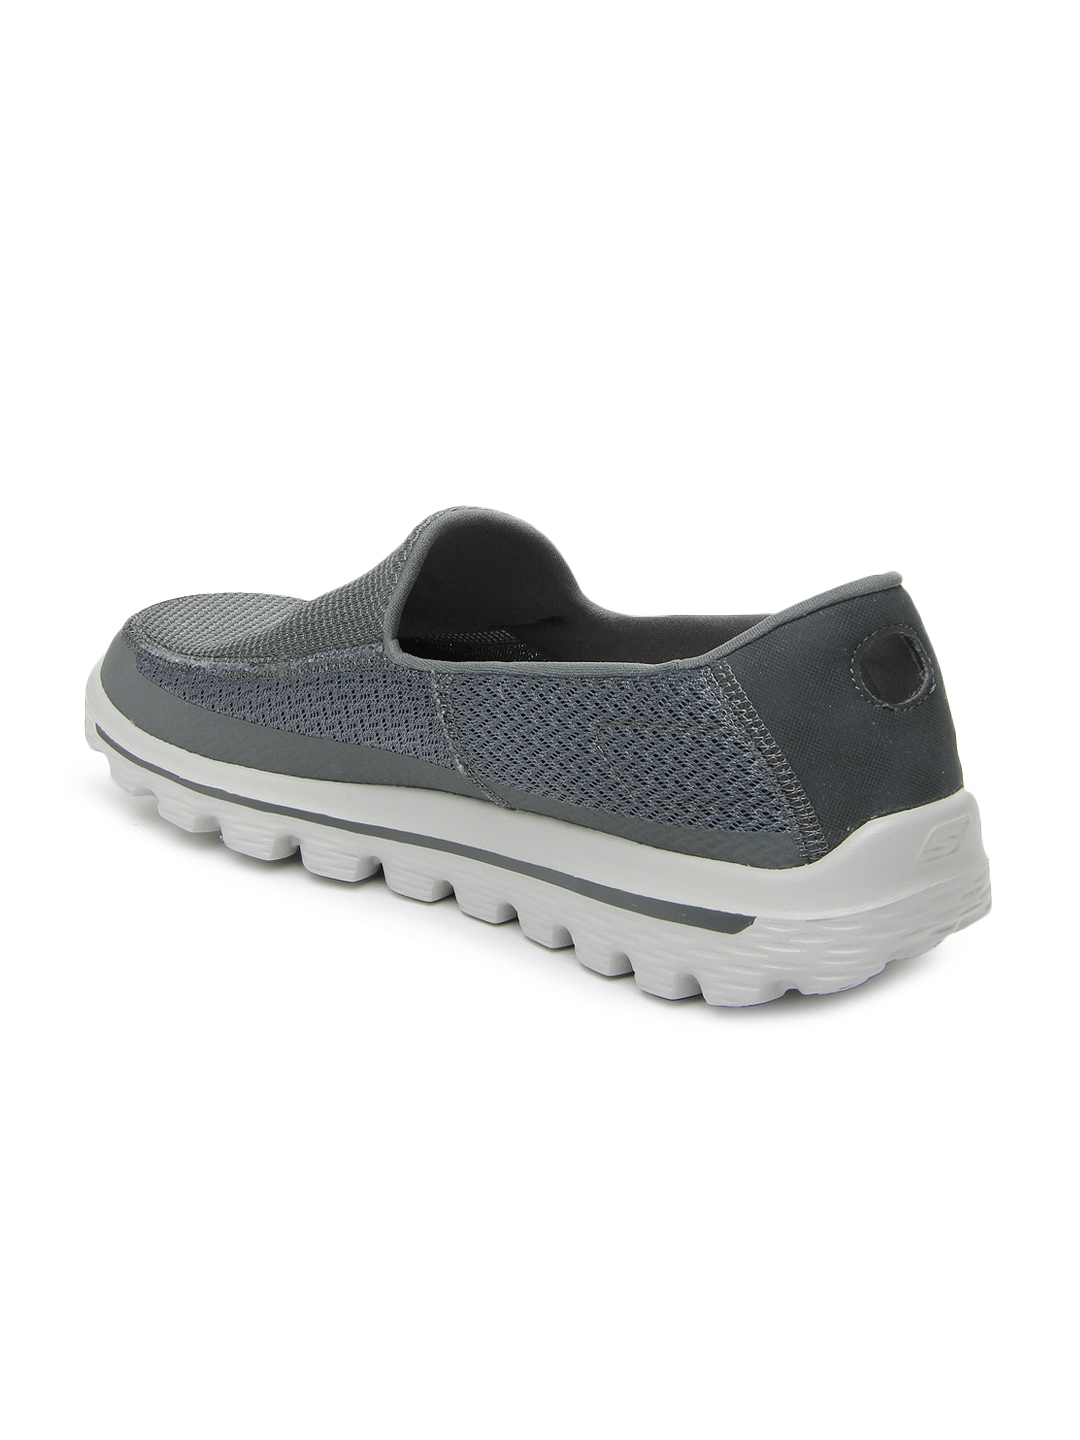 Skechers Shoes | Buy Skechers Shoes Online in India Myntra